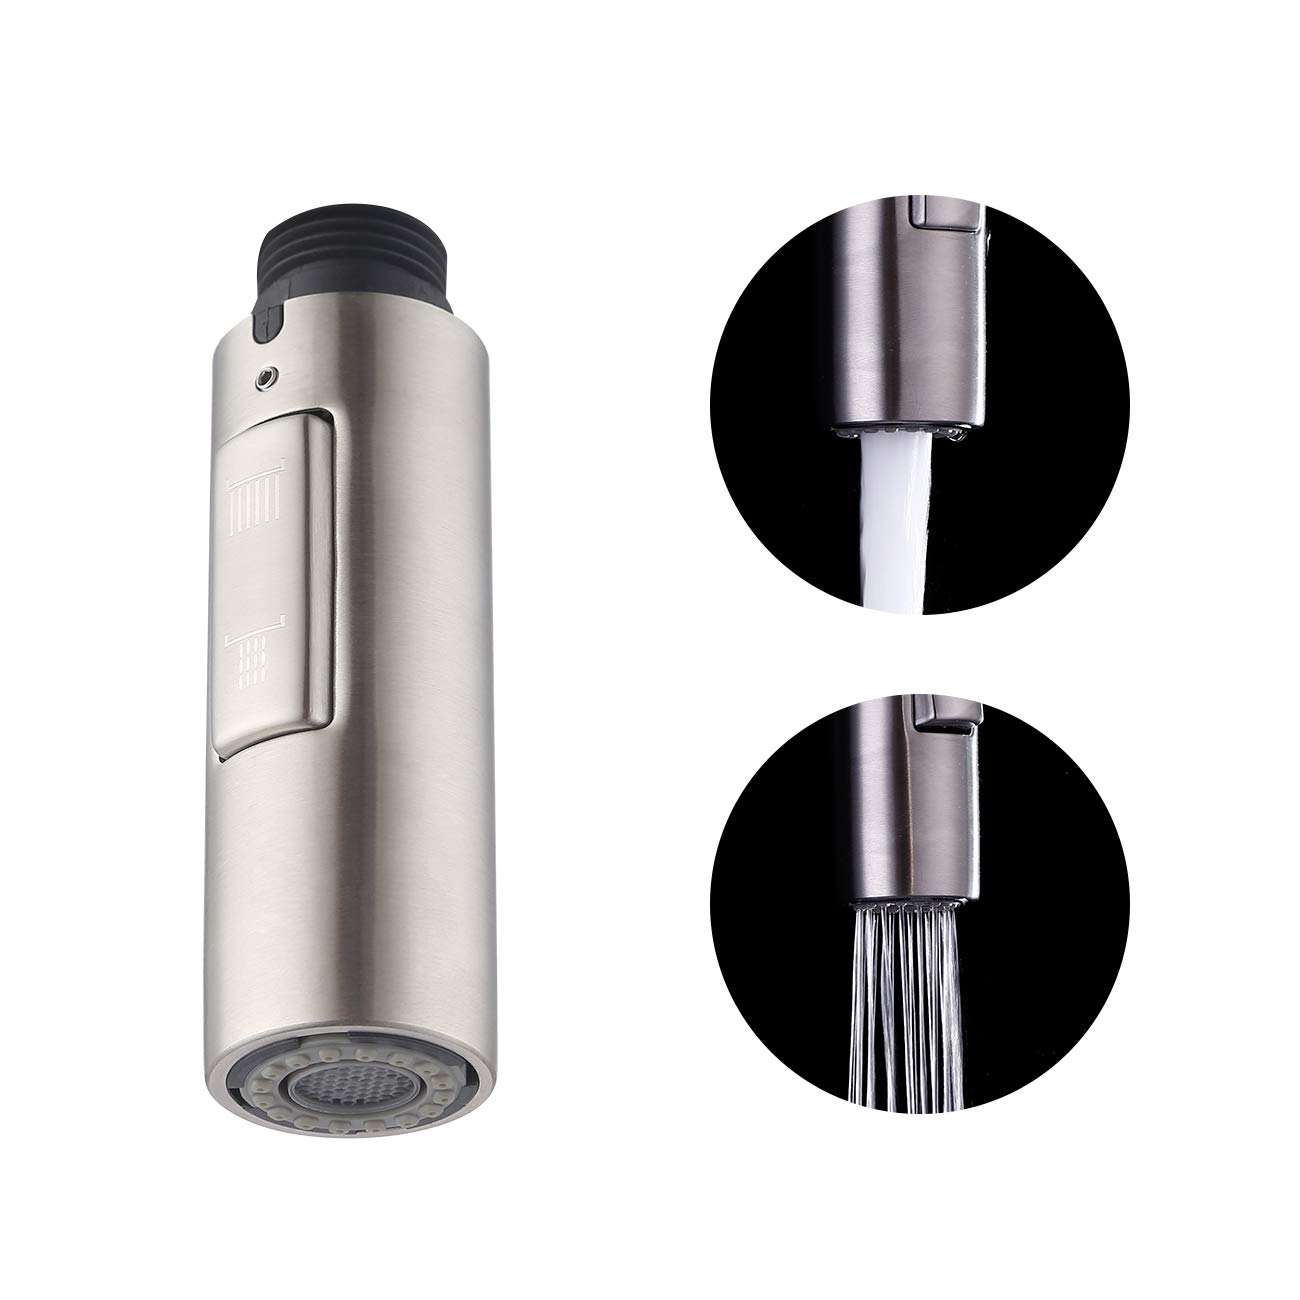 KES Kitchen Sink Faucet Sprayer Head Replacement SUS304 Stainless Steel 2-Functions Pull Out Spray Head Brushed Finish, PFS200-BS by KES